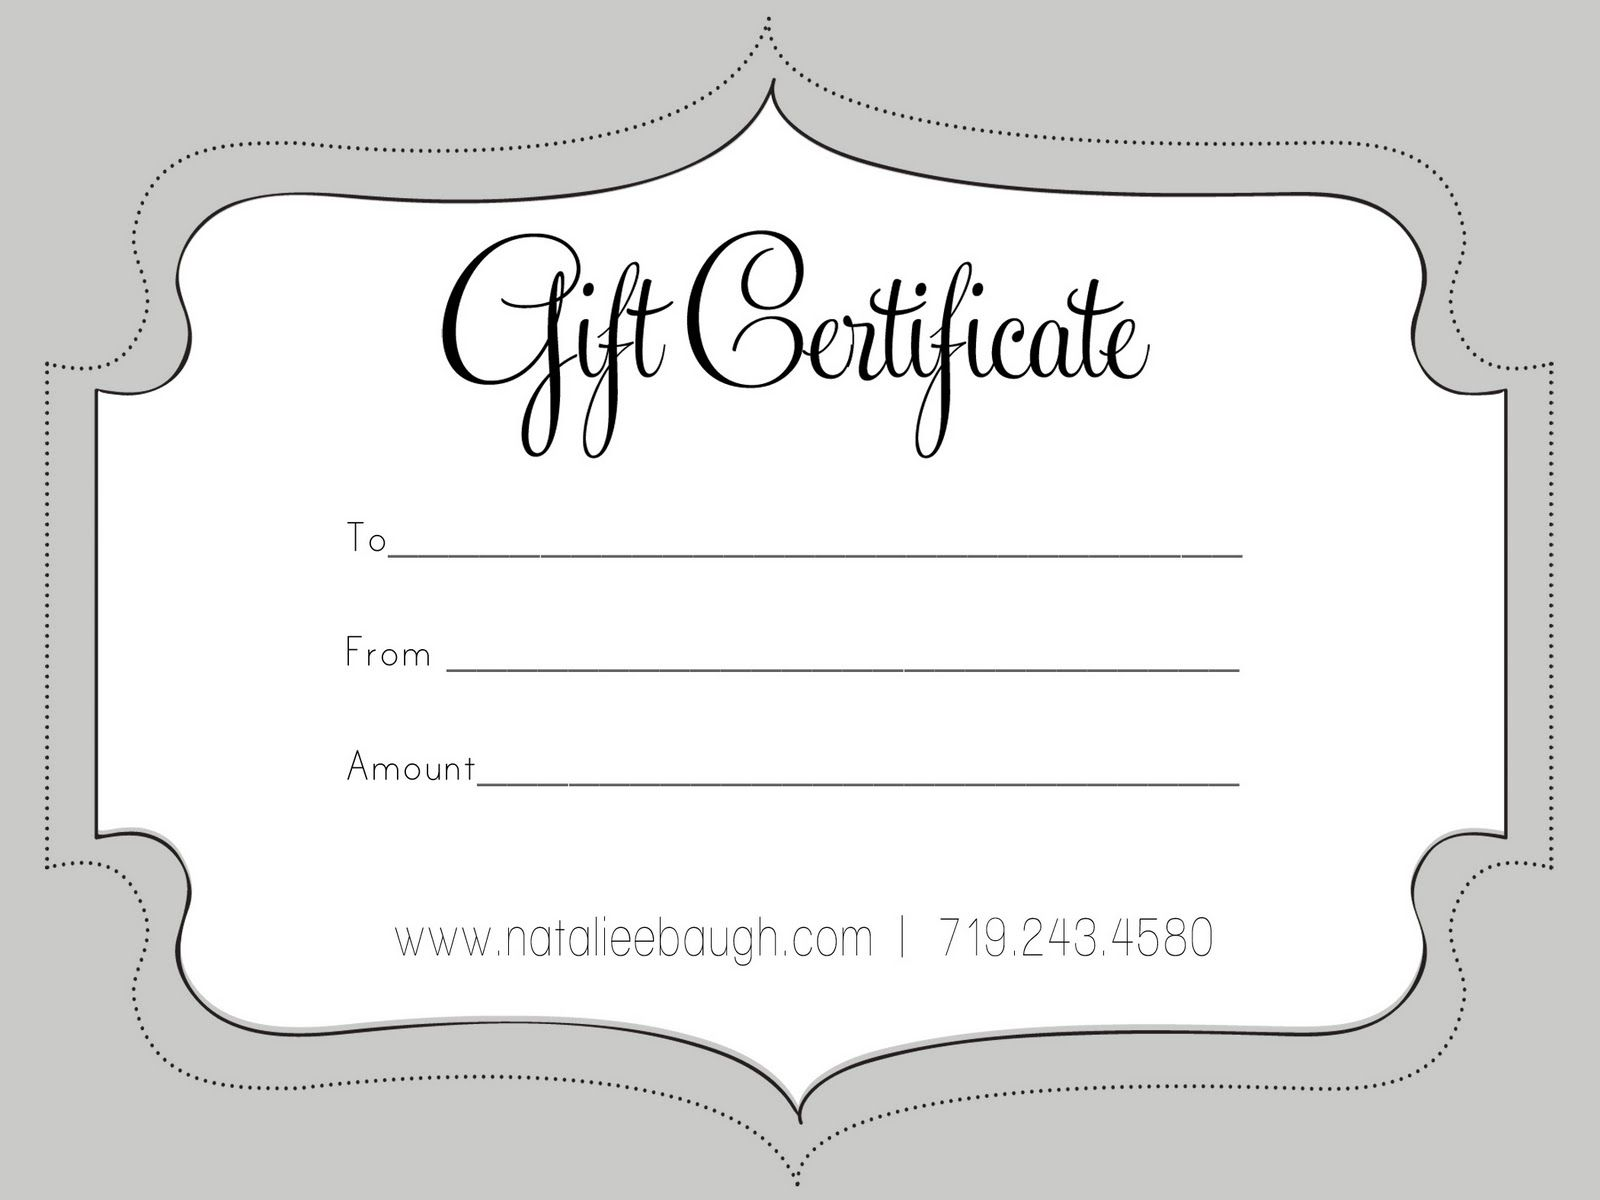 A cute looking gift certificate s p a pinterest gift gift certificates for portrait sessions virginia beach norfolk va photographers melissa bliss photography business ideas yadclub Choice Image